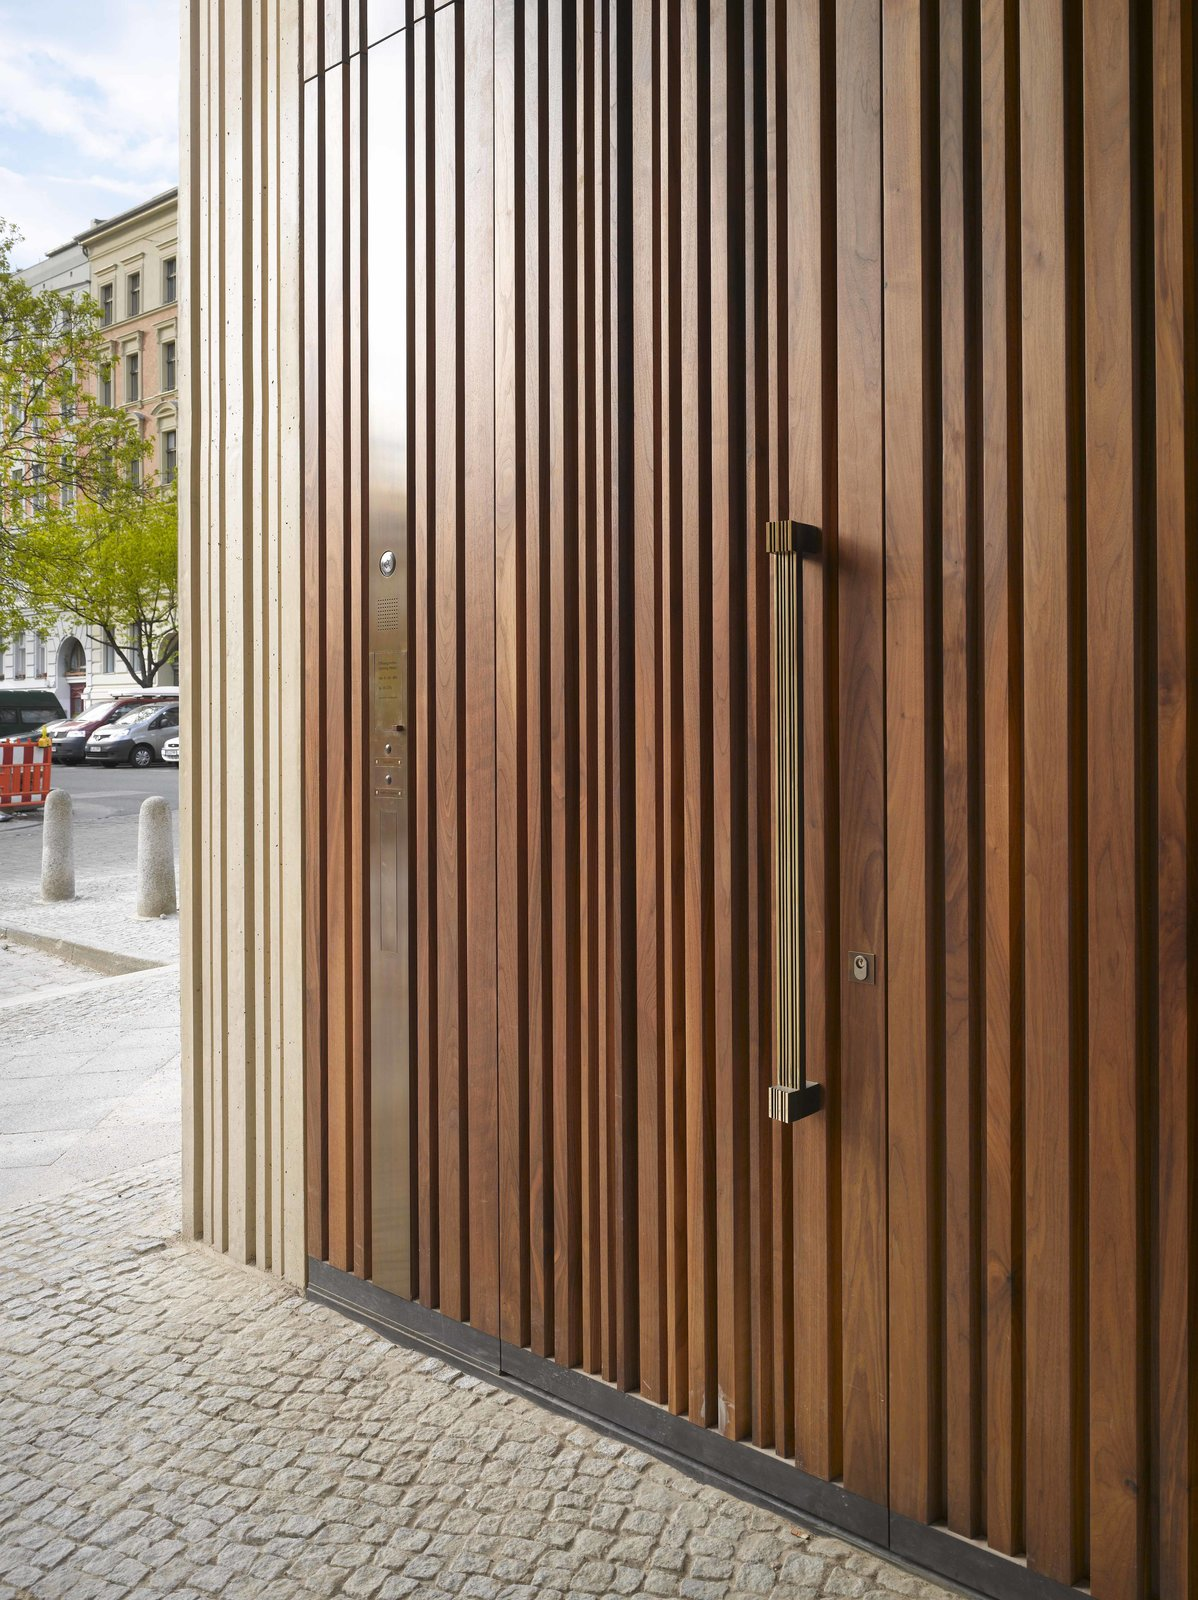 The wooden door mimics the structure's textured exterior.  Photo 10 of 10 in Take a Peek Through These 10 Modern Front Doors from Stunning Architectural Drawing Museum in Berlin